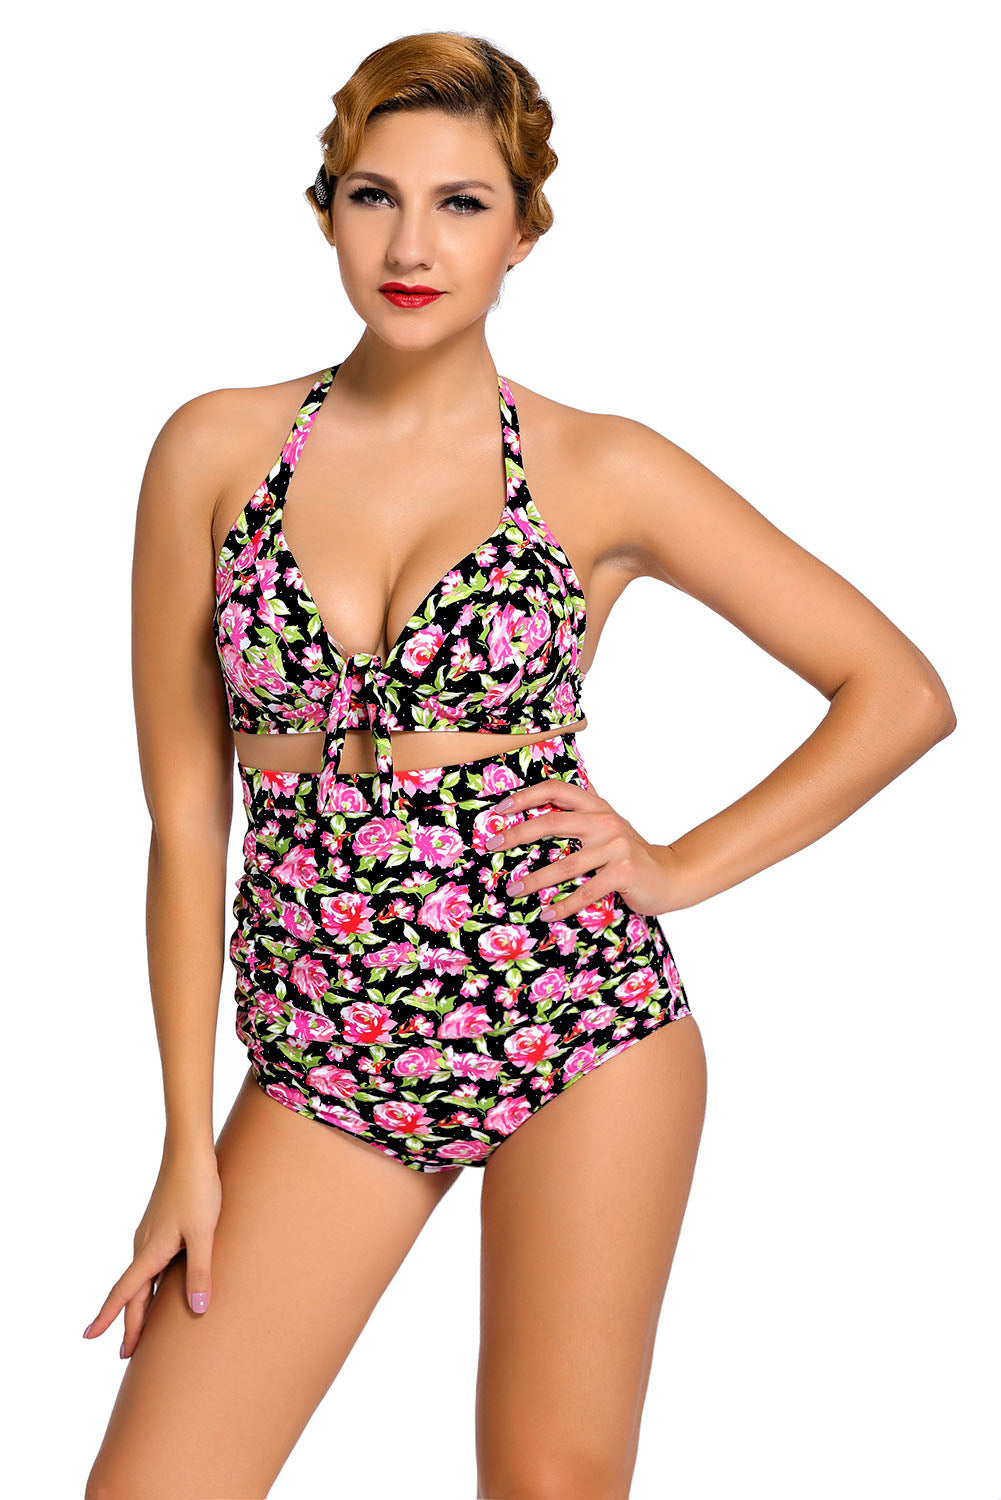 c528663669a32 Sexy Floral Print Black Retro High Waist 2 Pieces Swimsuit – SEXY ...